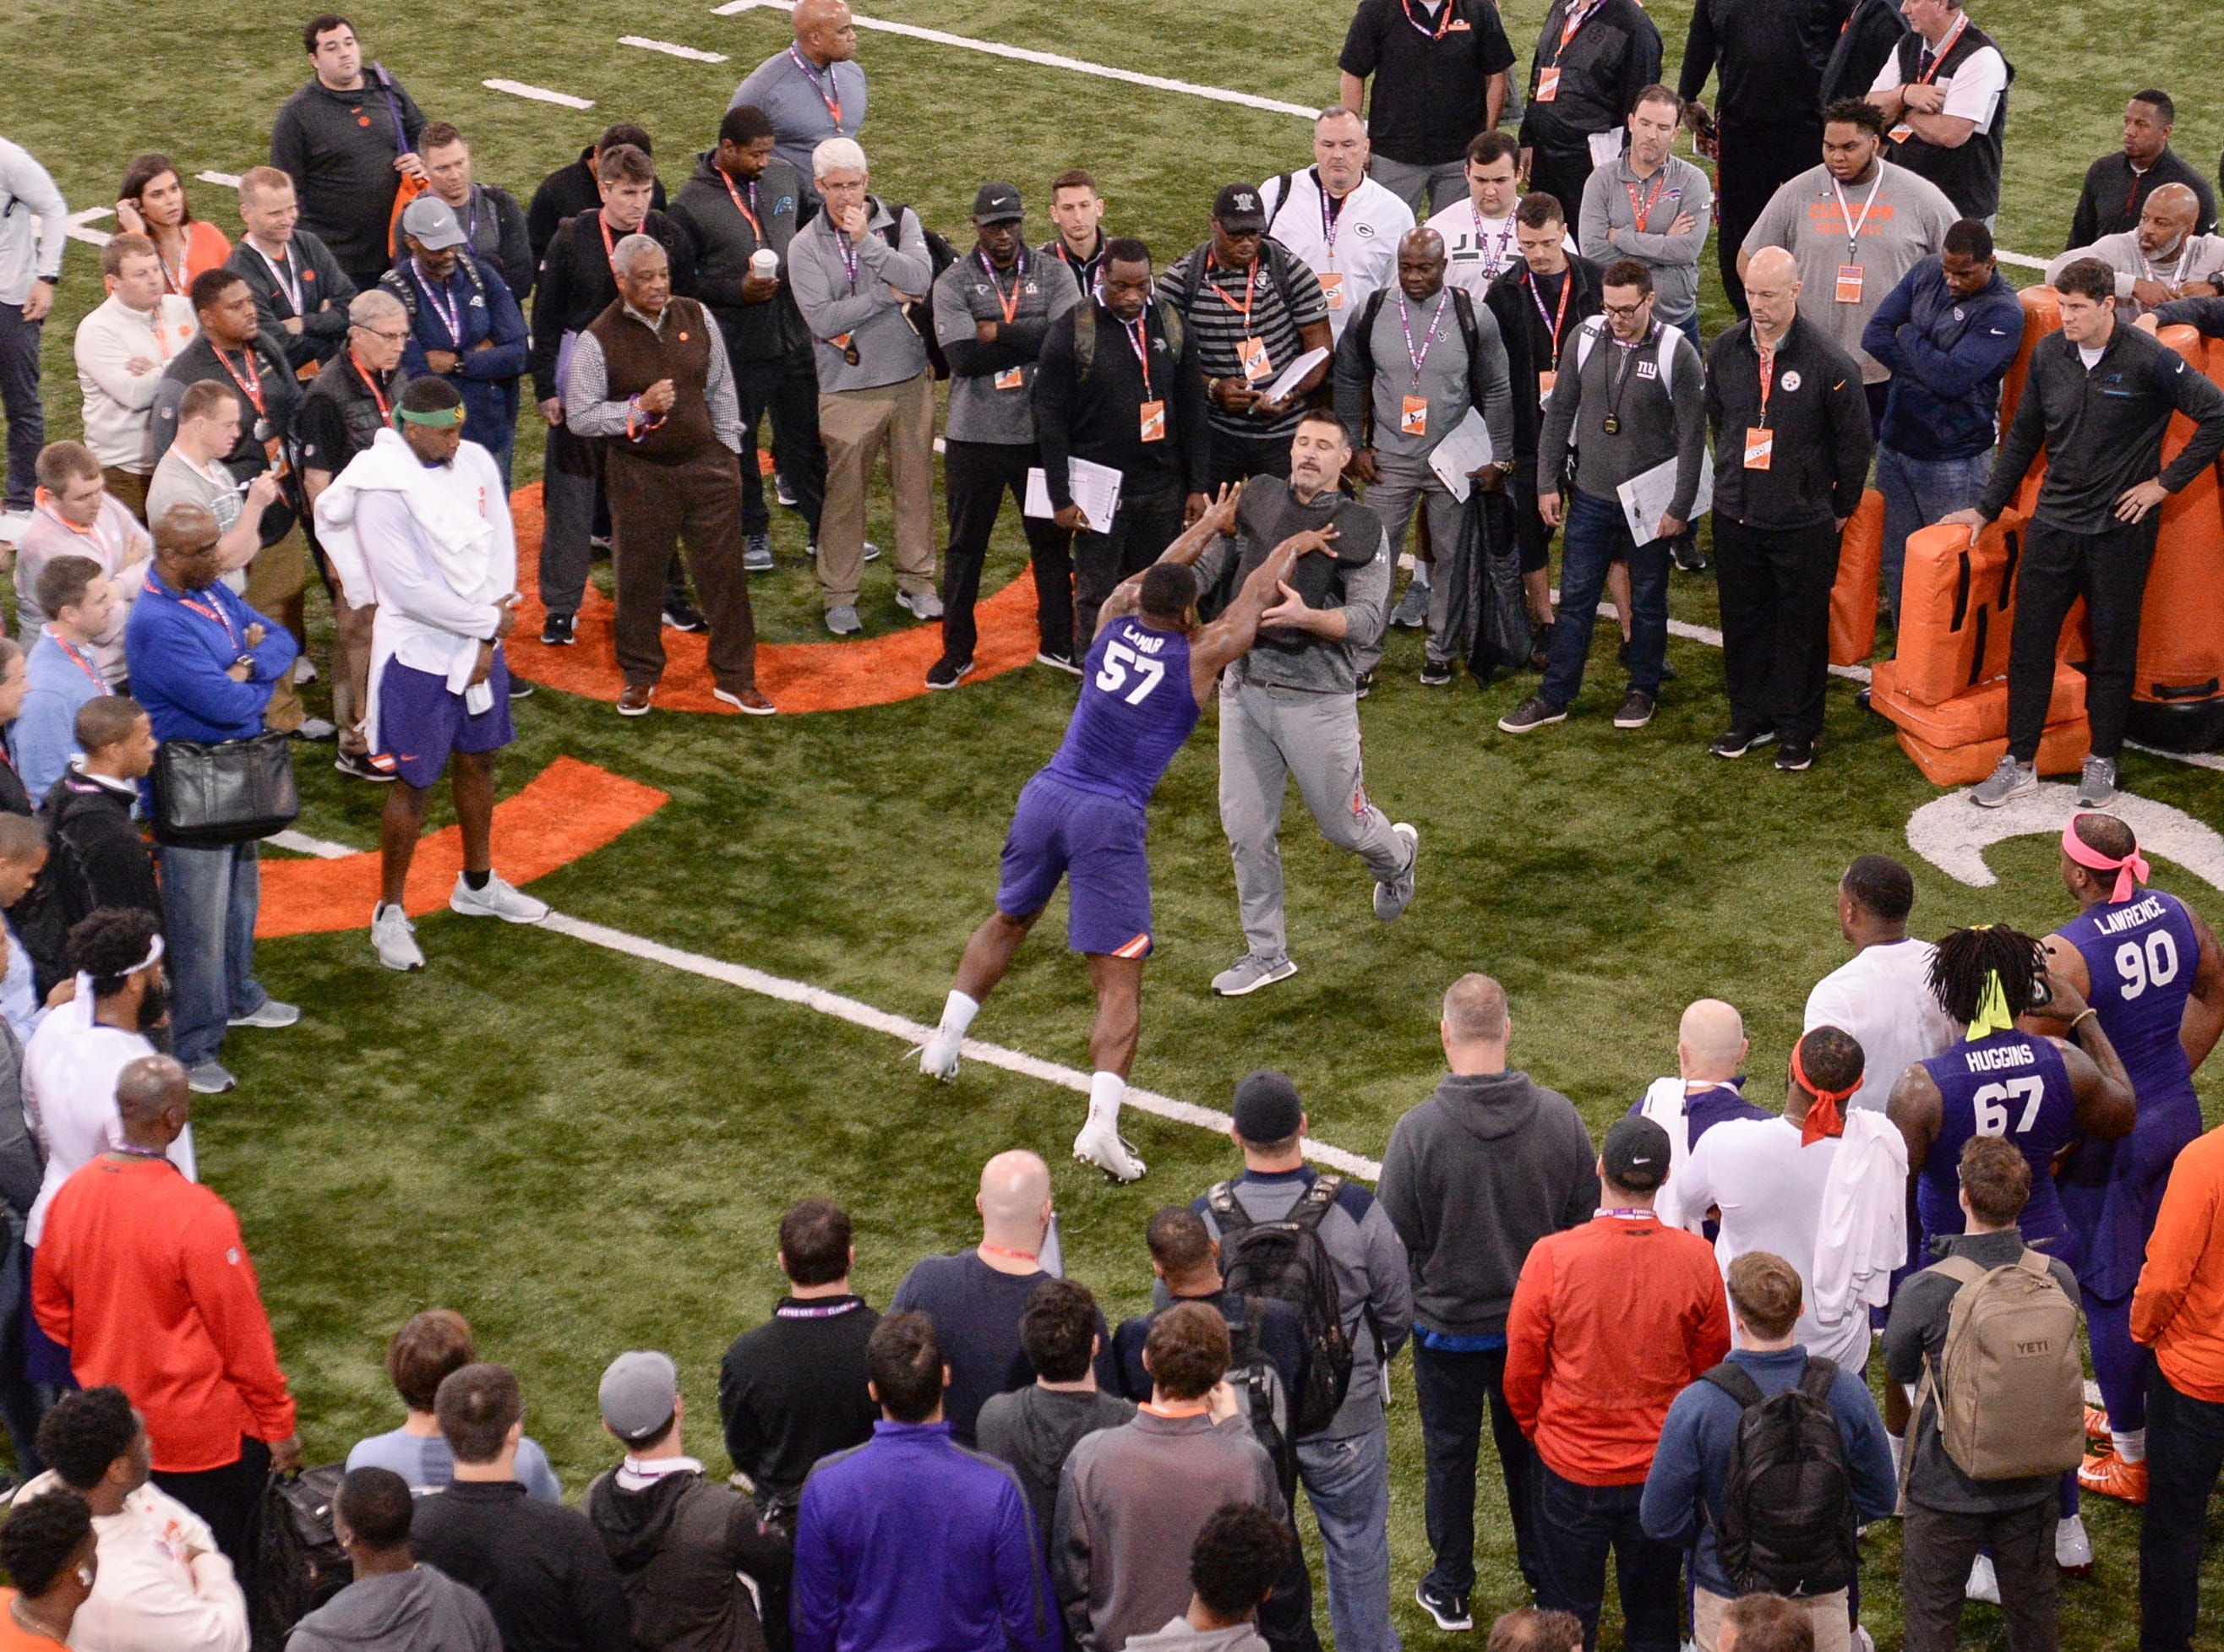 Defender Tre Lamar III pushes off Tennessee head coach Mike Vrabel in a drill during Clemson pro day at the Poe Indoor Facility in Clemson Thursday, March 14, 2019.